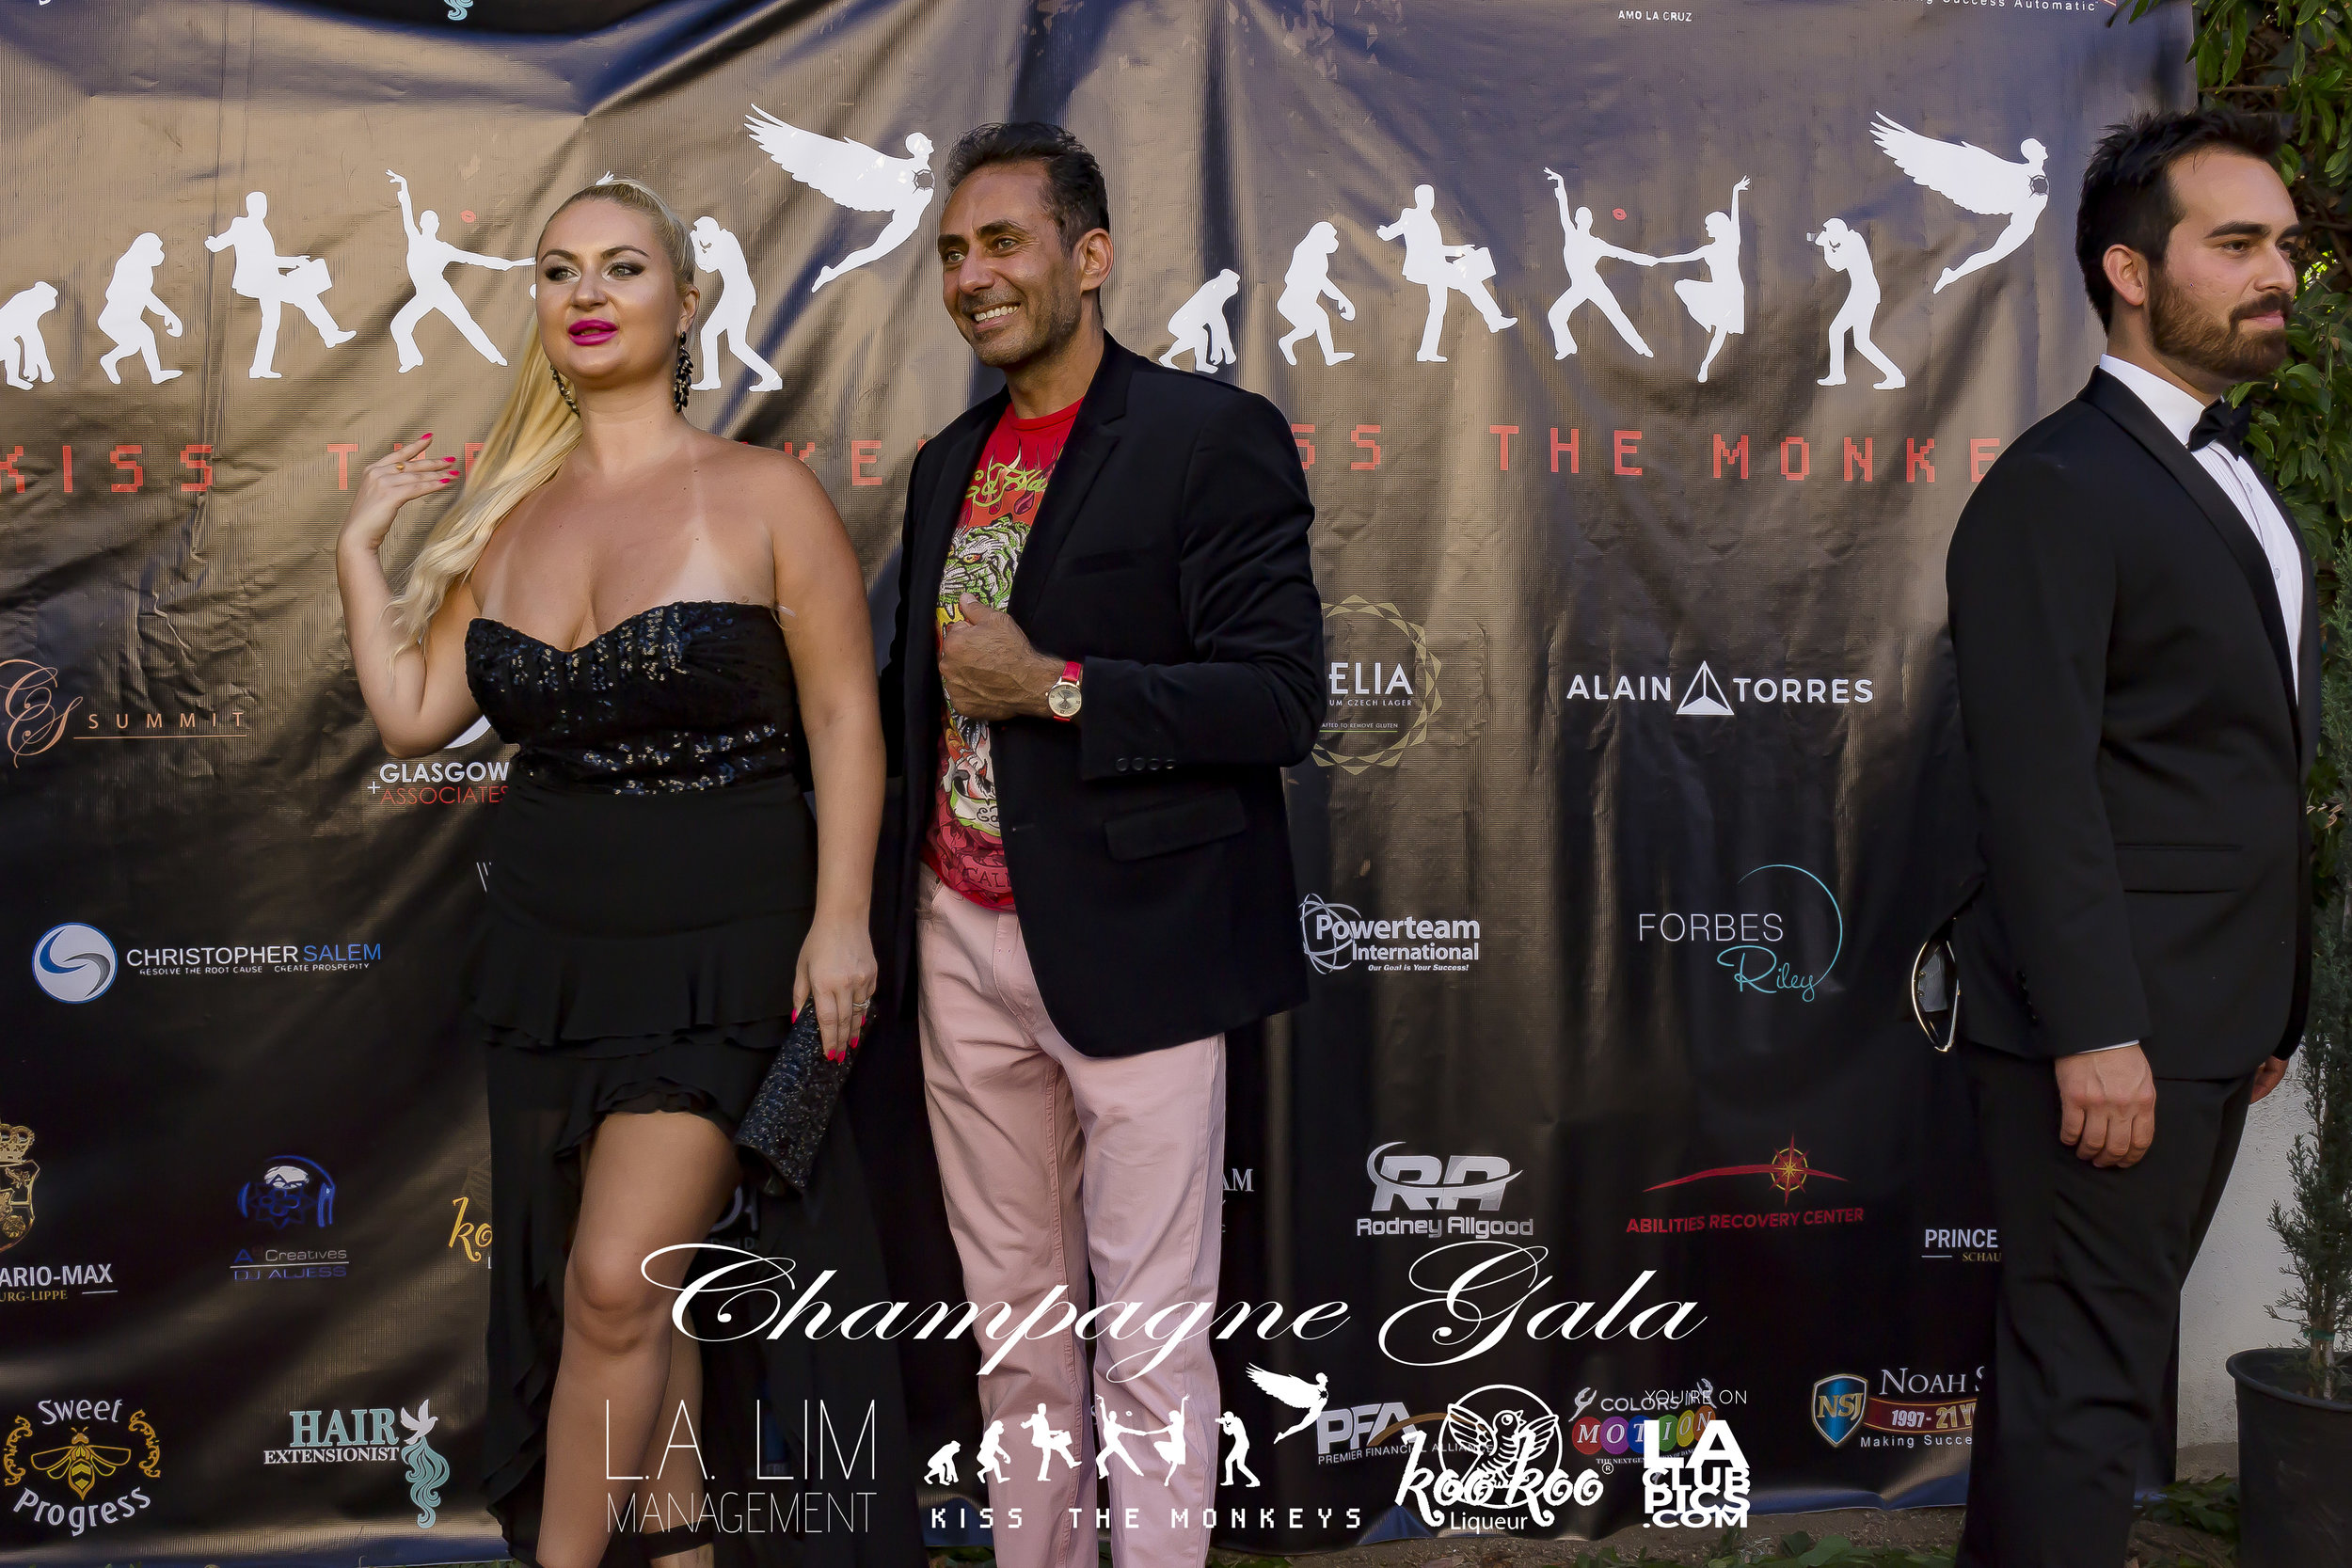 Kiss The Monkeys - Champagne Gala - 07-21-18_95.jpg